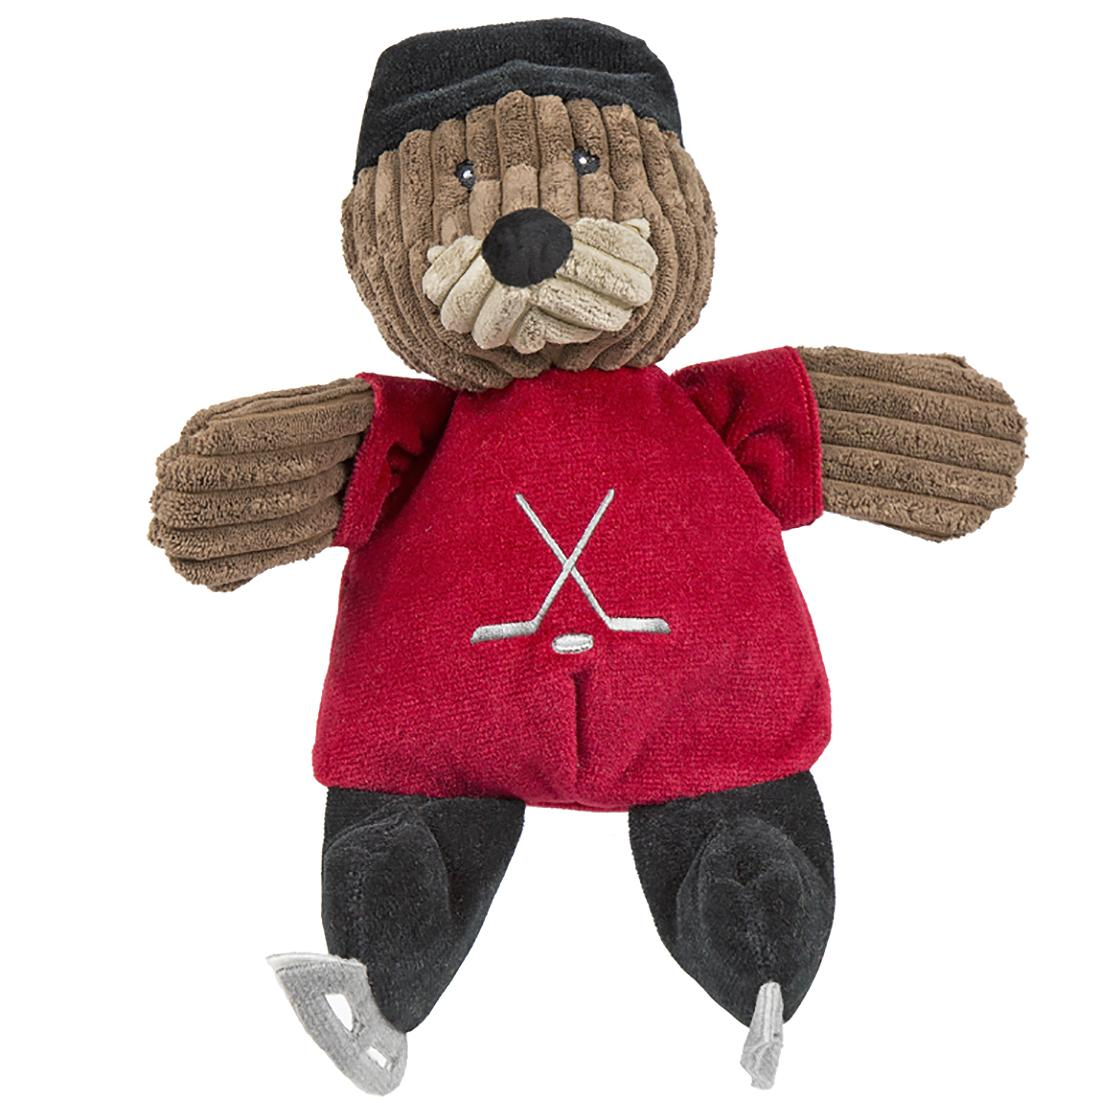 HuggleHounds Chubbie Buddie Plush Dog Toy - Fox Hockey Player